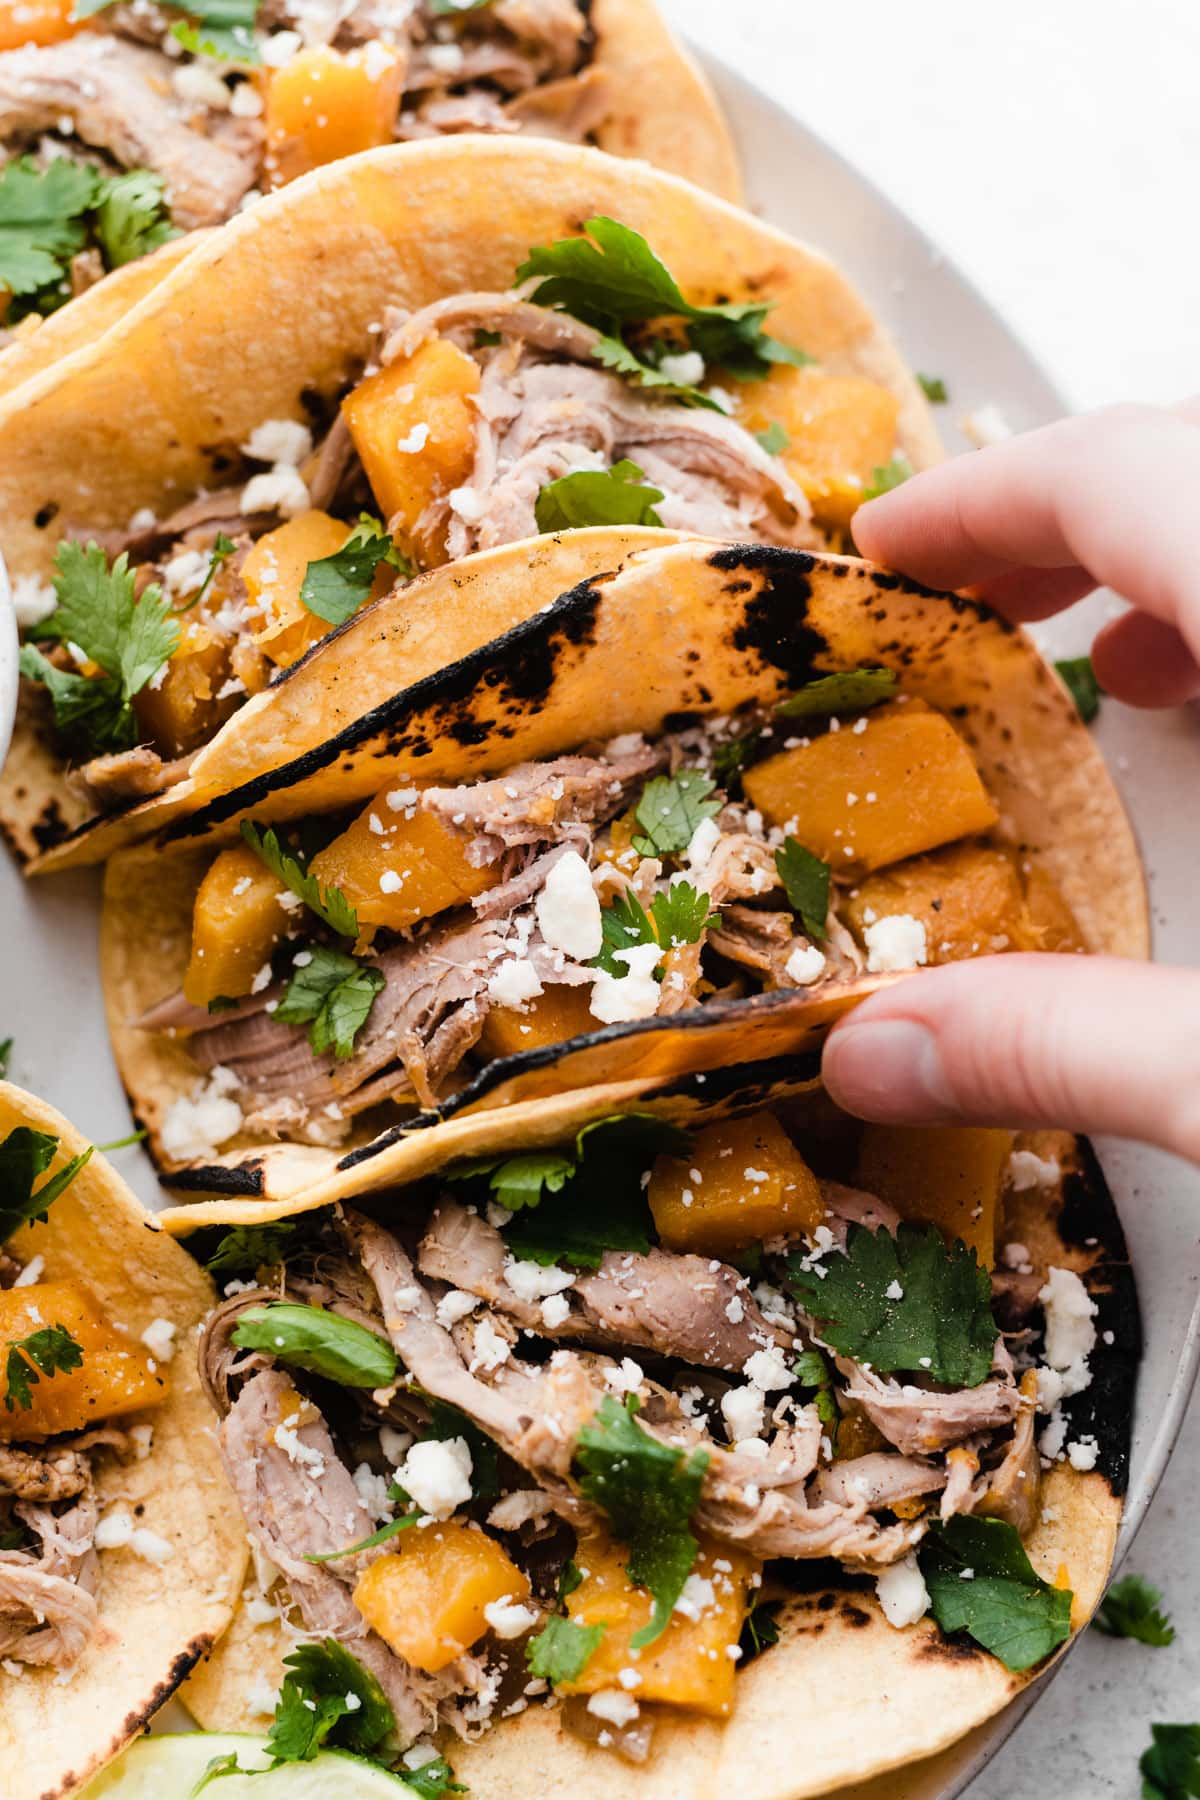 Slow Cooker Butternut Squash and Pulled Pork Tacos